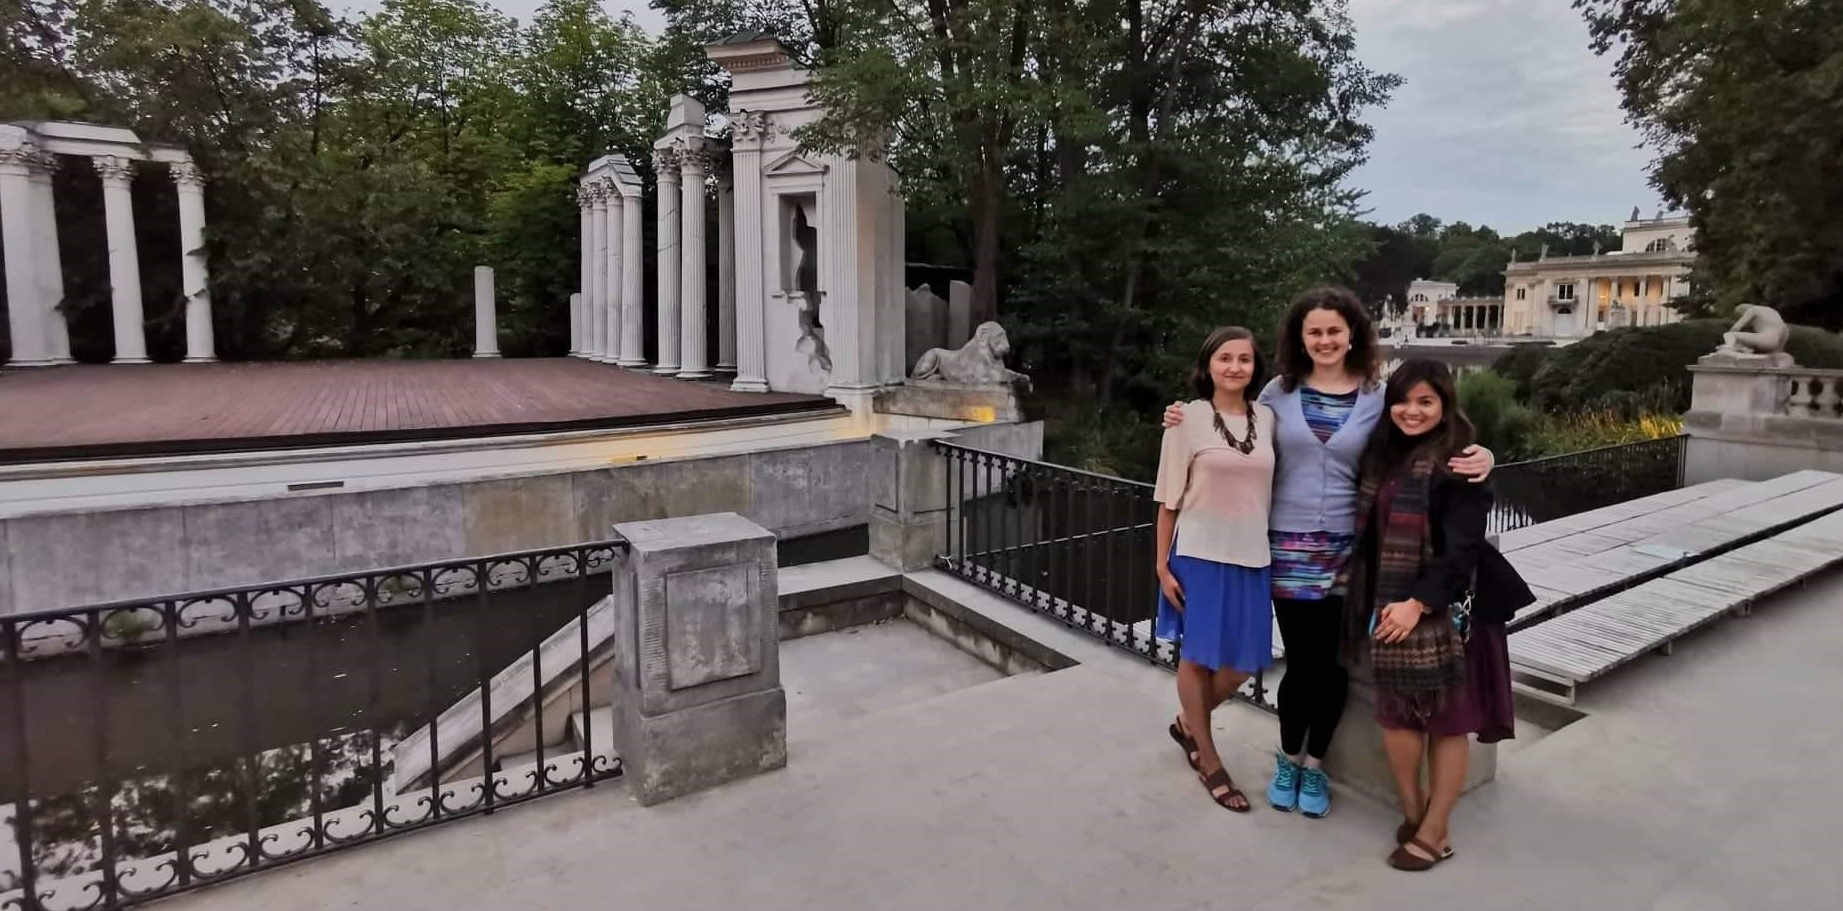 Step in Warsaw - City guide to Warsaw. A lovely tourist from Philippines is experiencing Warsaw in the company of two lovely residents of Warsaw:). Łazienki Królewskie (Royal Baths) - a summer residence of the last elective king of Poland Stanisław August Poniatowski (the 2nd half of the 18th century). The Amphitheatre in the background built as ancient ruins and modeled on the theatre of Herculaneum. The Palace on the Island in the very background. Warsaw, 23.07.2019.